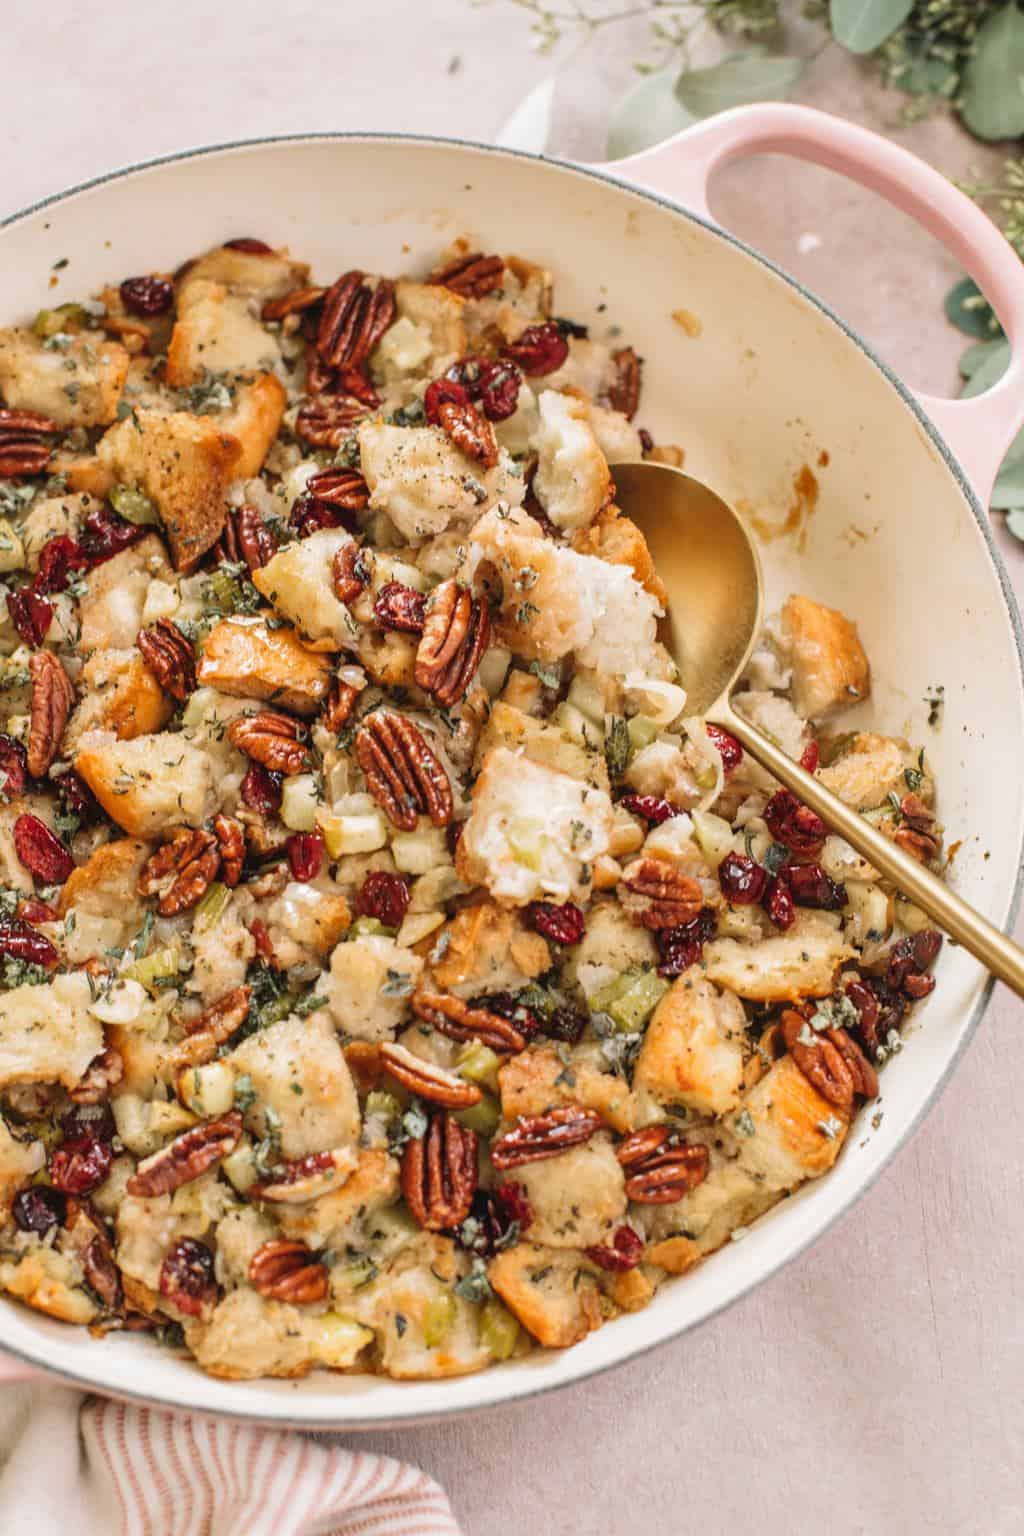 easy apple stuffing with pecans in pink casserole dish with gold serving spoon